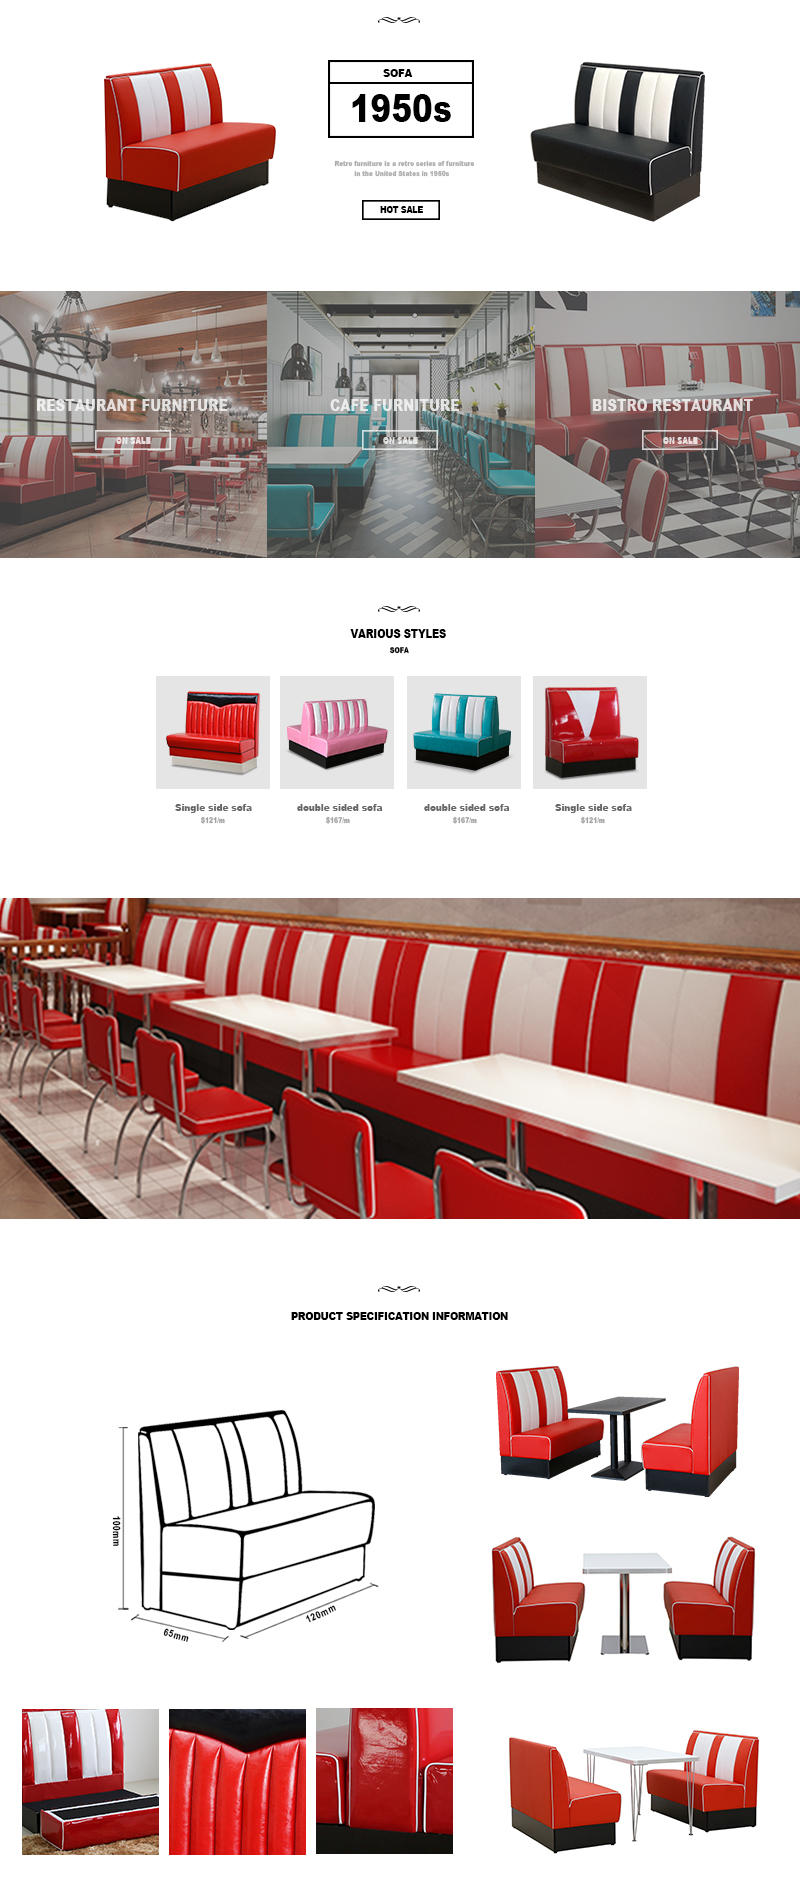 Uptop Furnishings banquette booth free design for bar